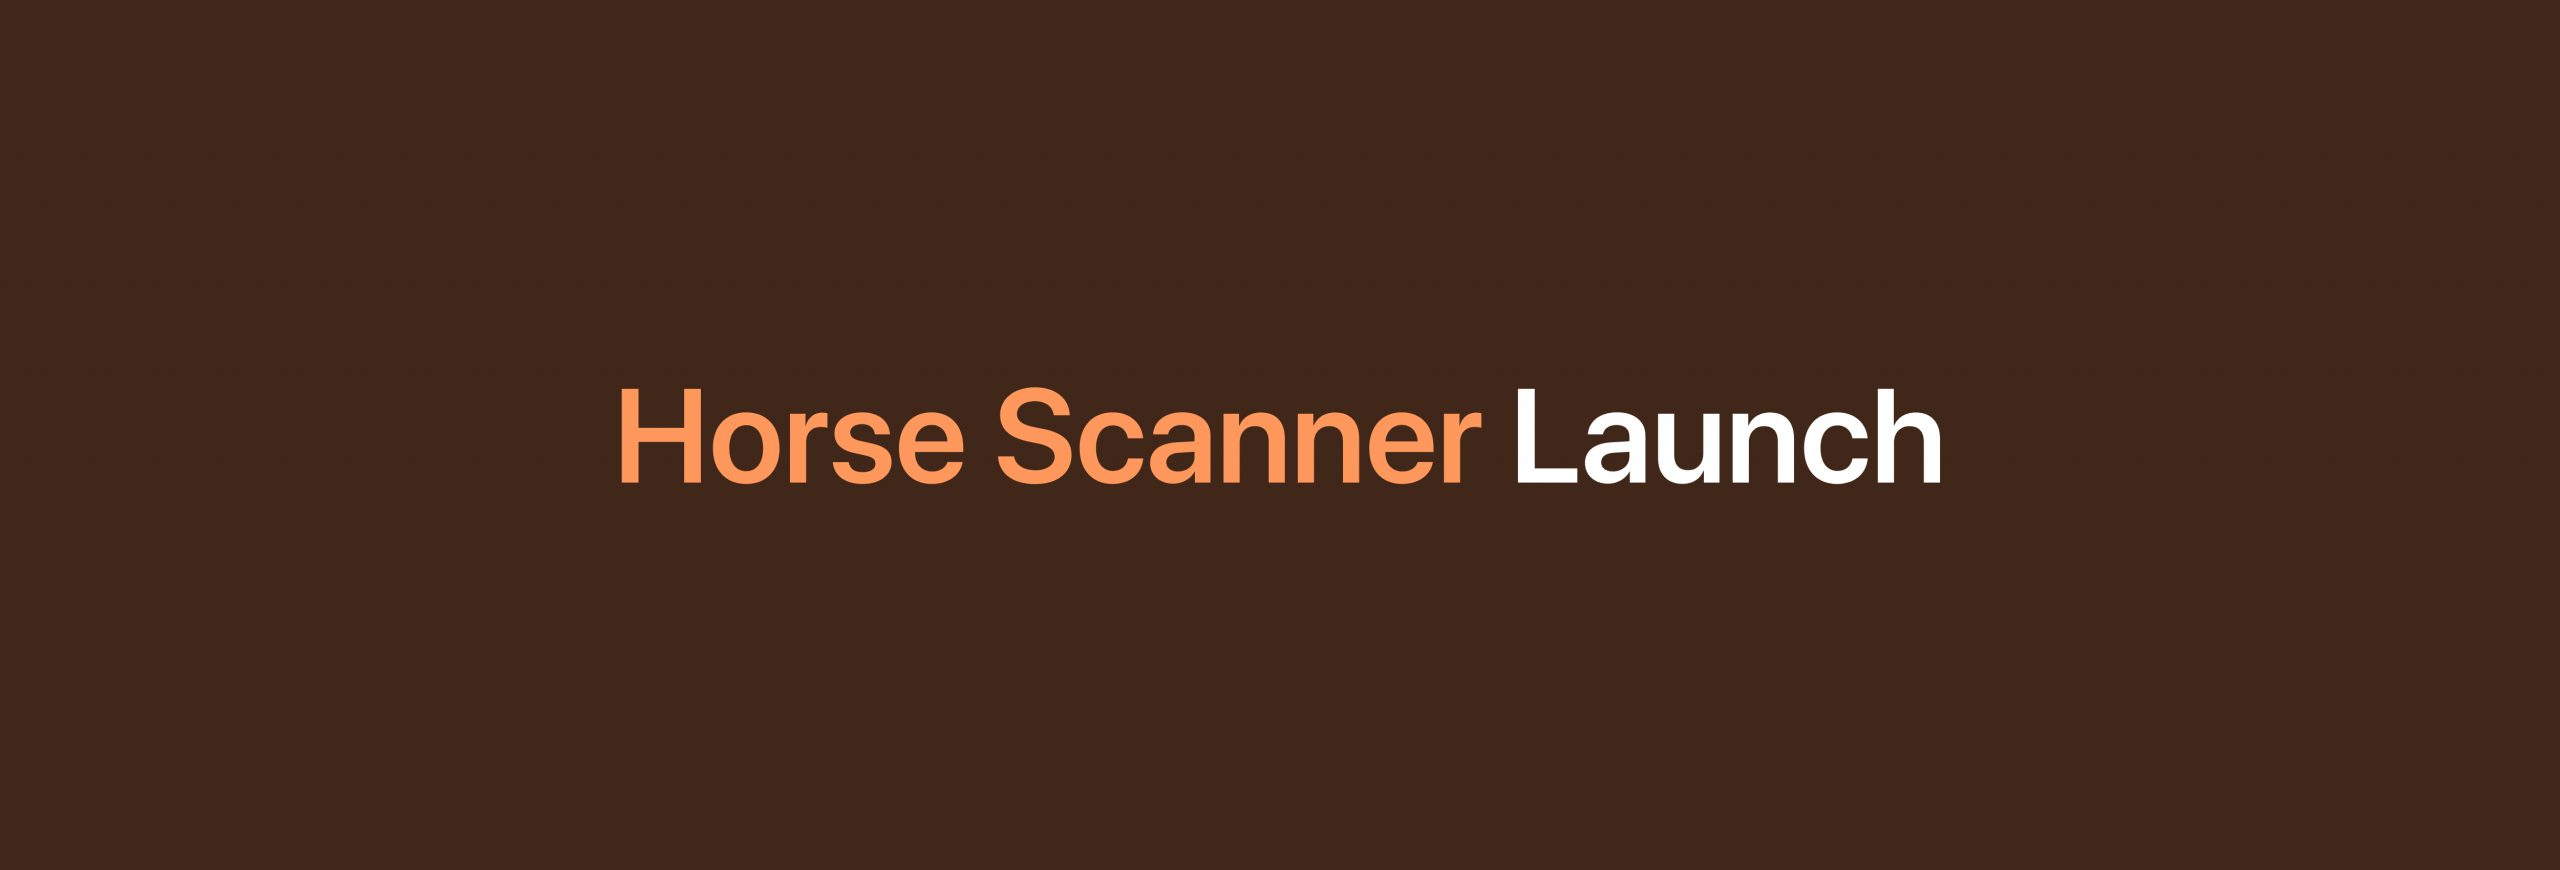 New app Horse Scanner launched